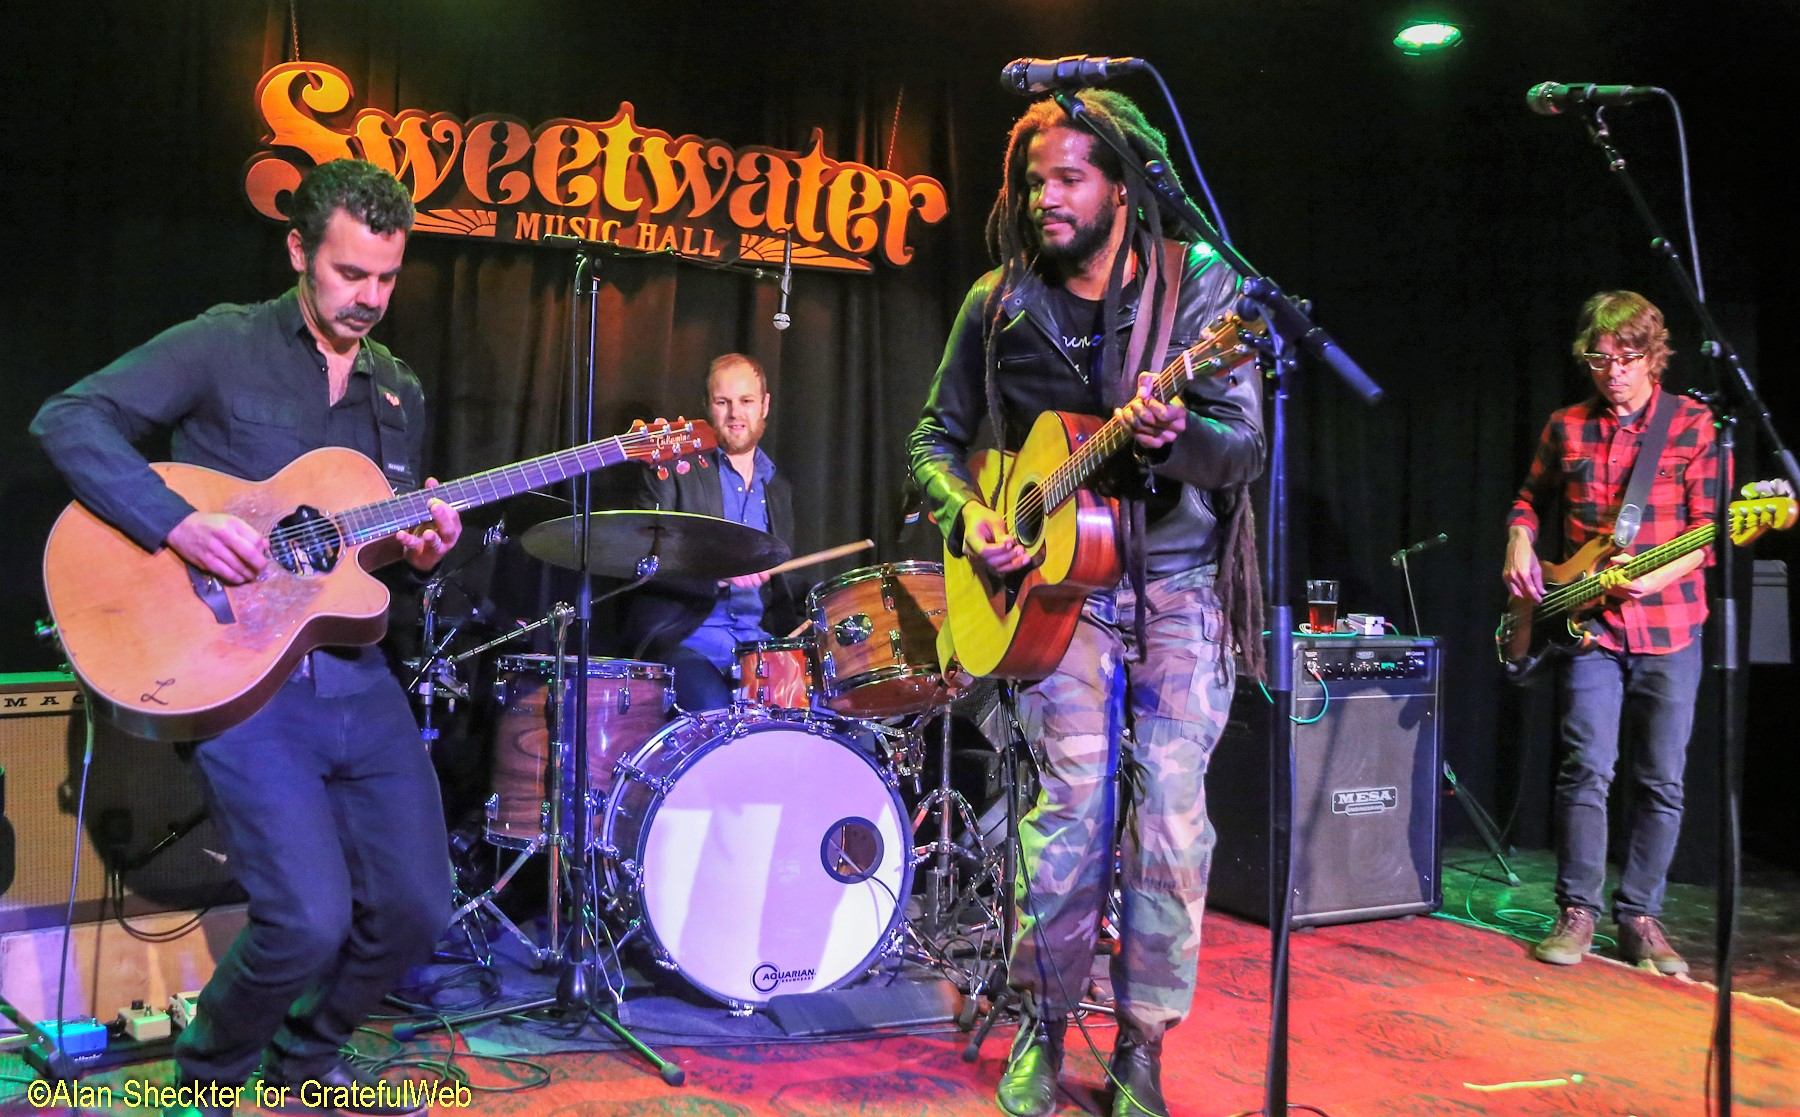 Paul Beaubrun with ALO | Sweetwater Music Hall